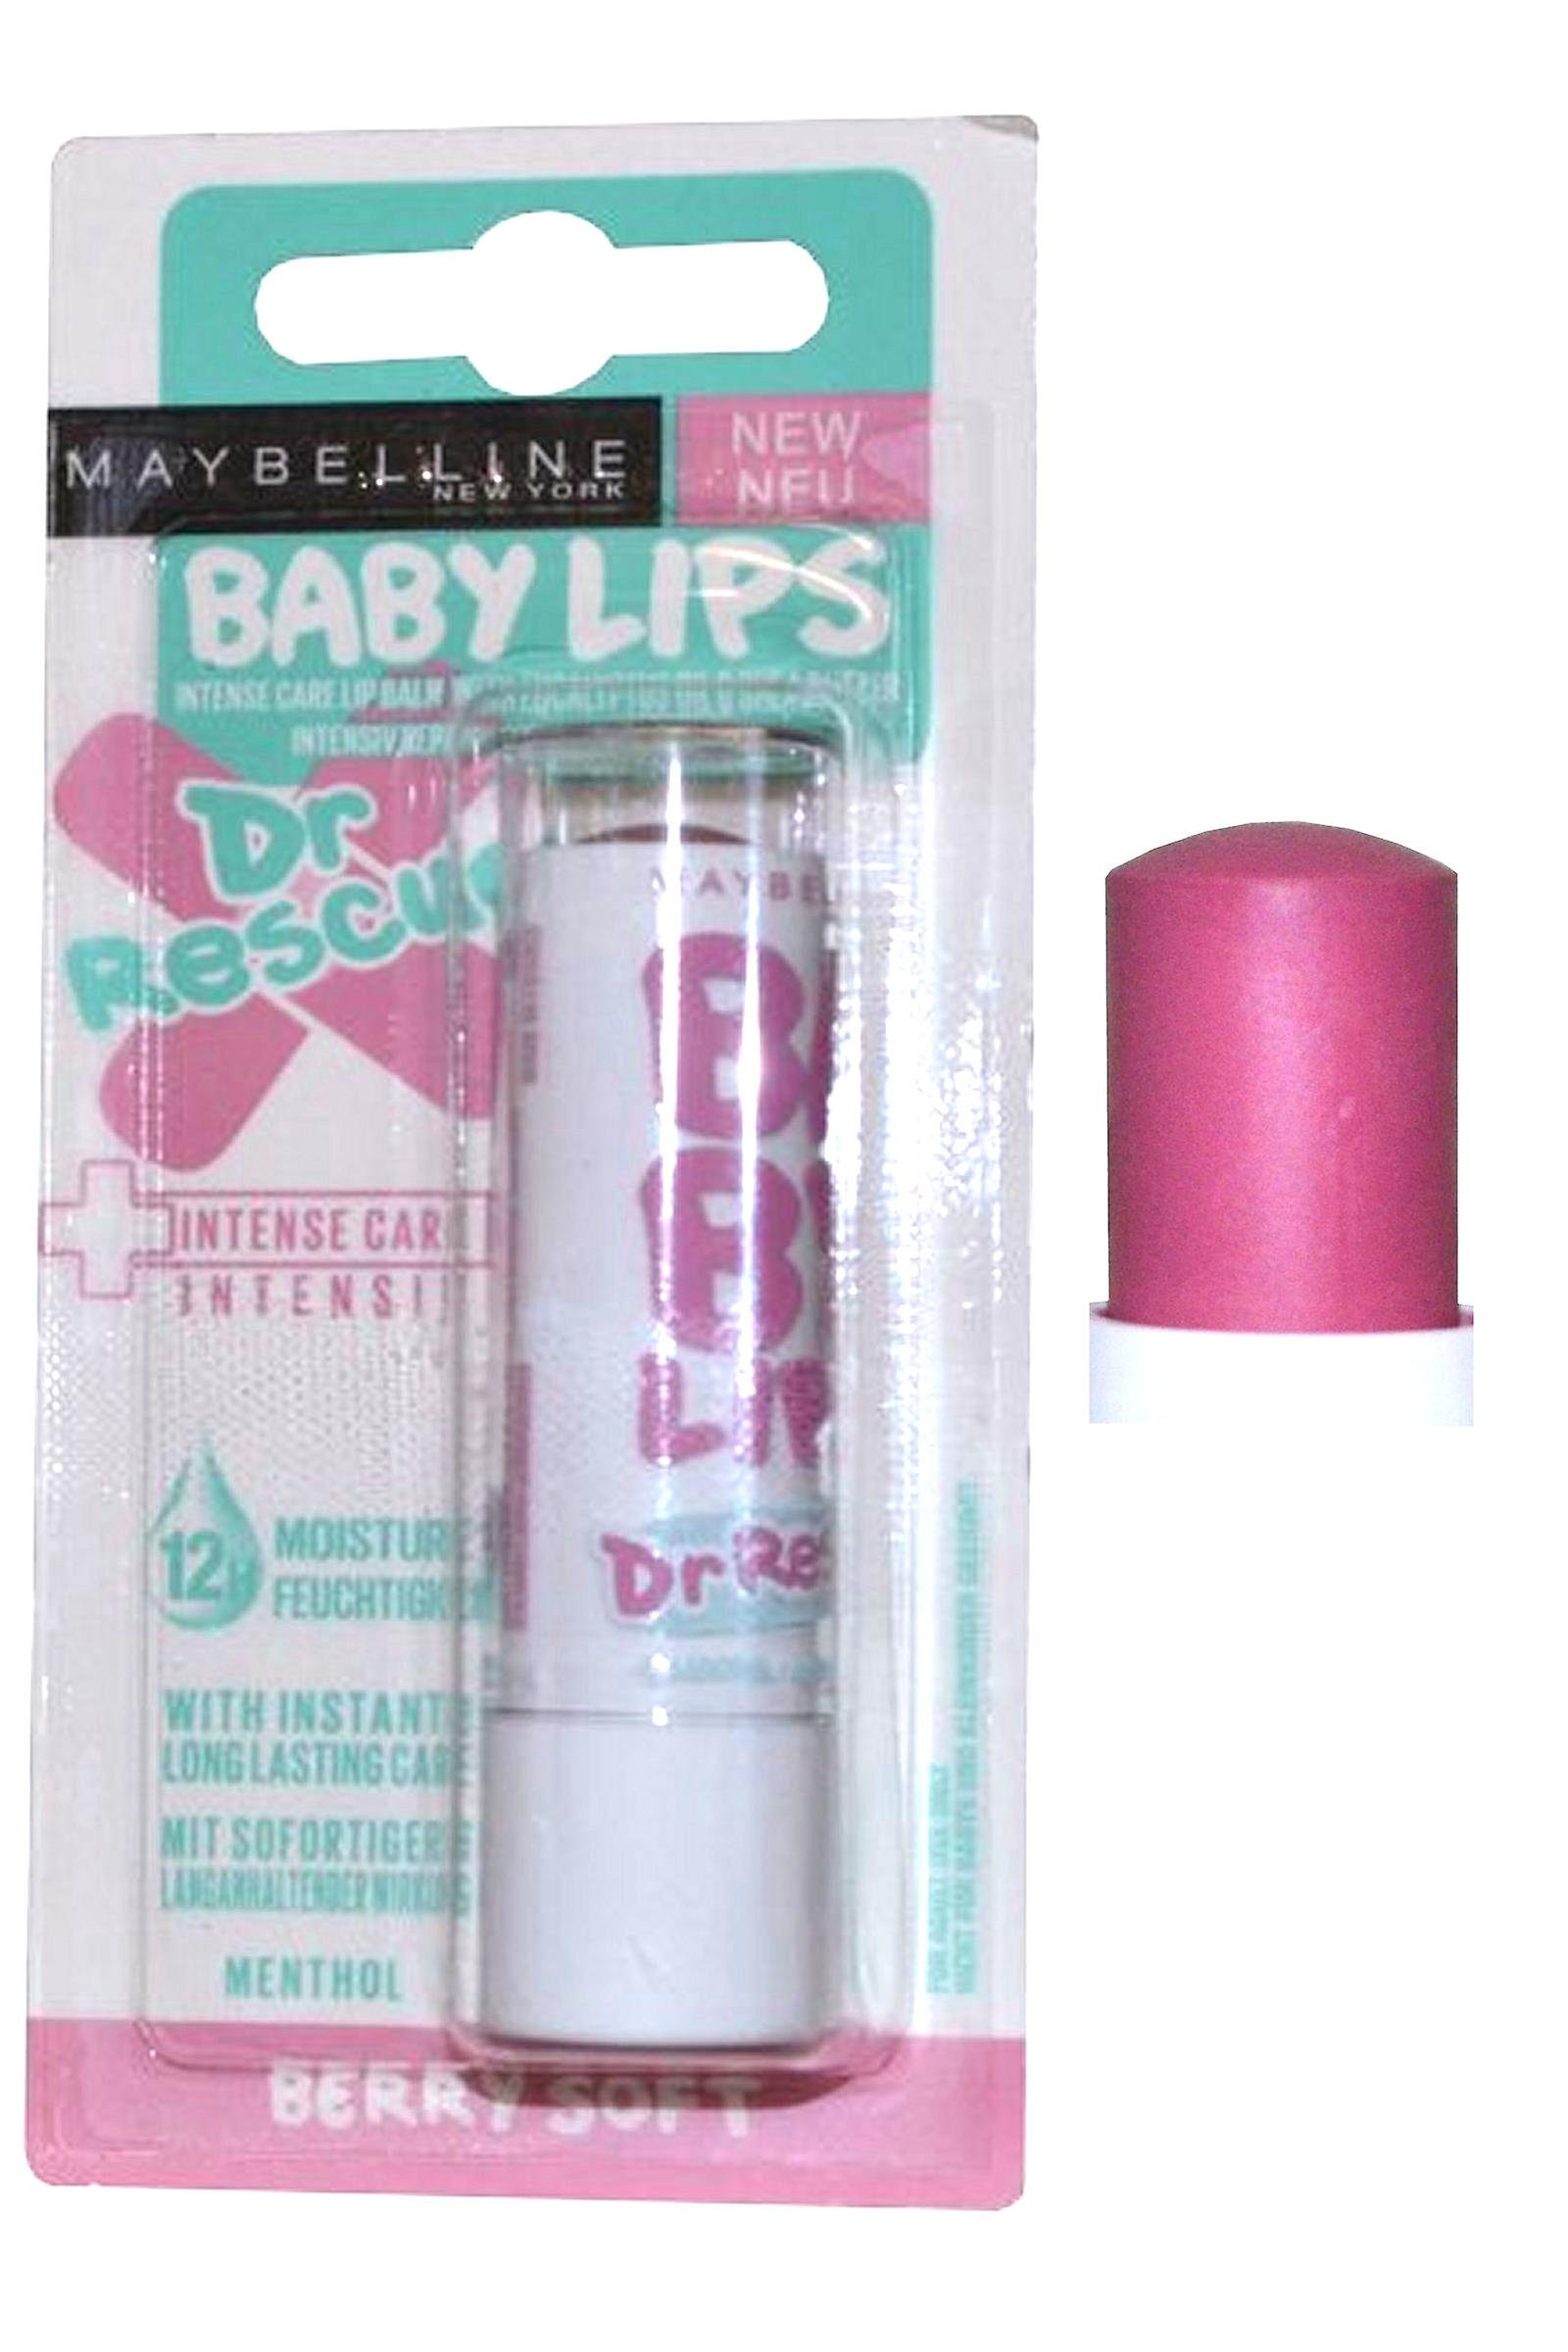 Maybelline Baby Lips Intense Care Lip Balm with Eucalyptus 4ml Berry Soft Dr Rescue